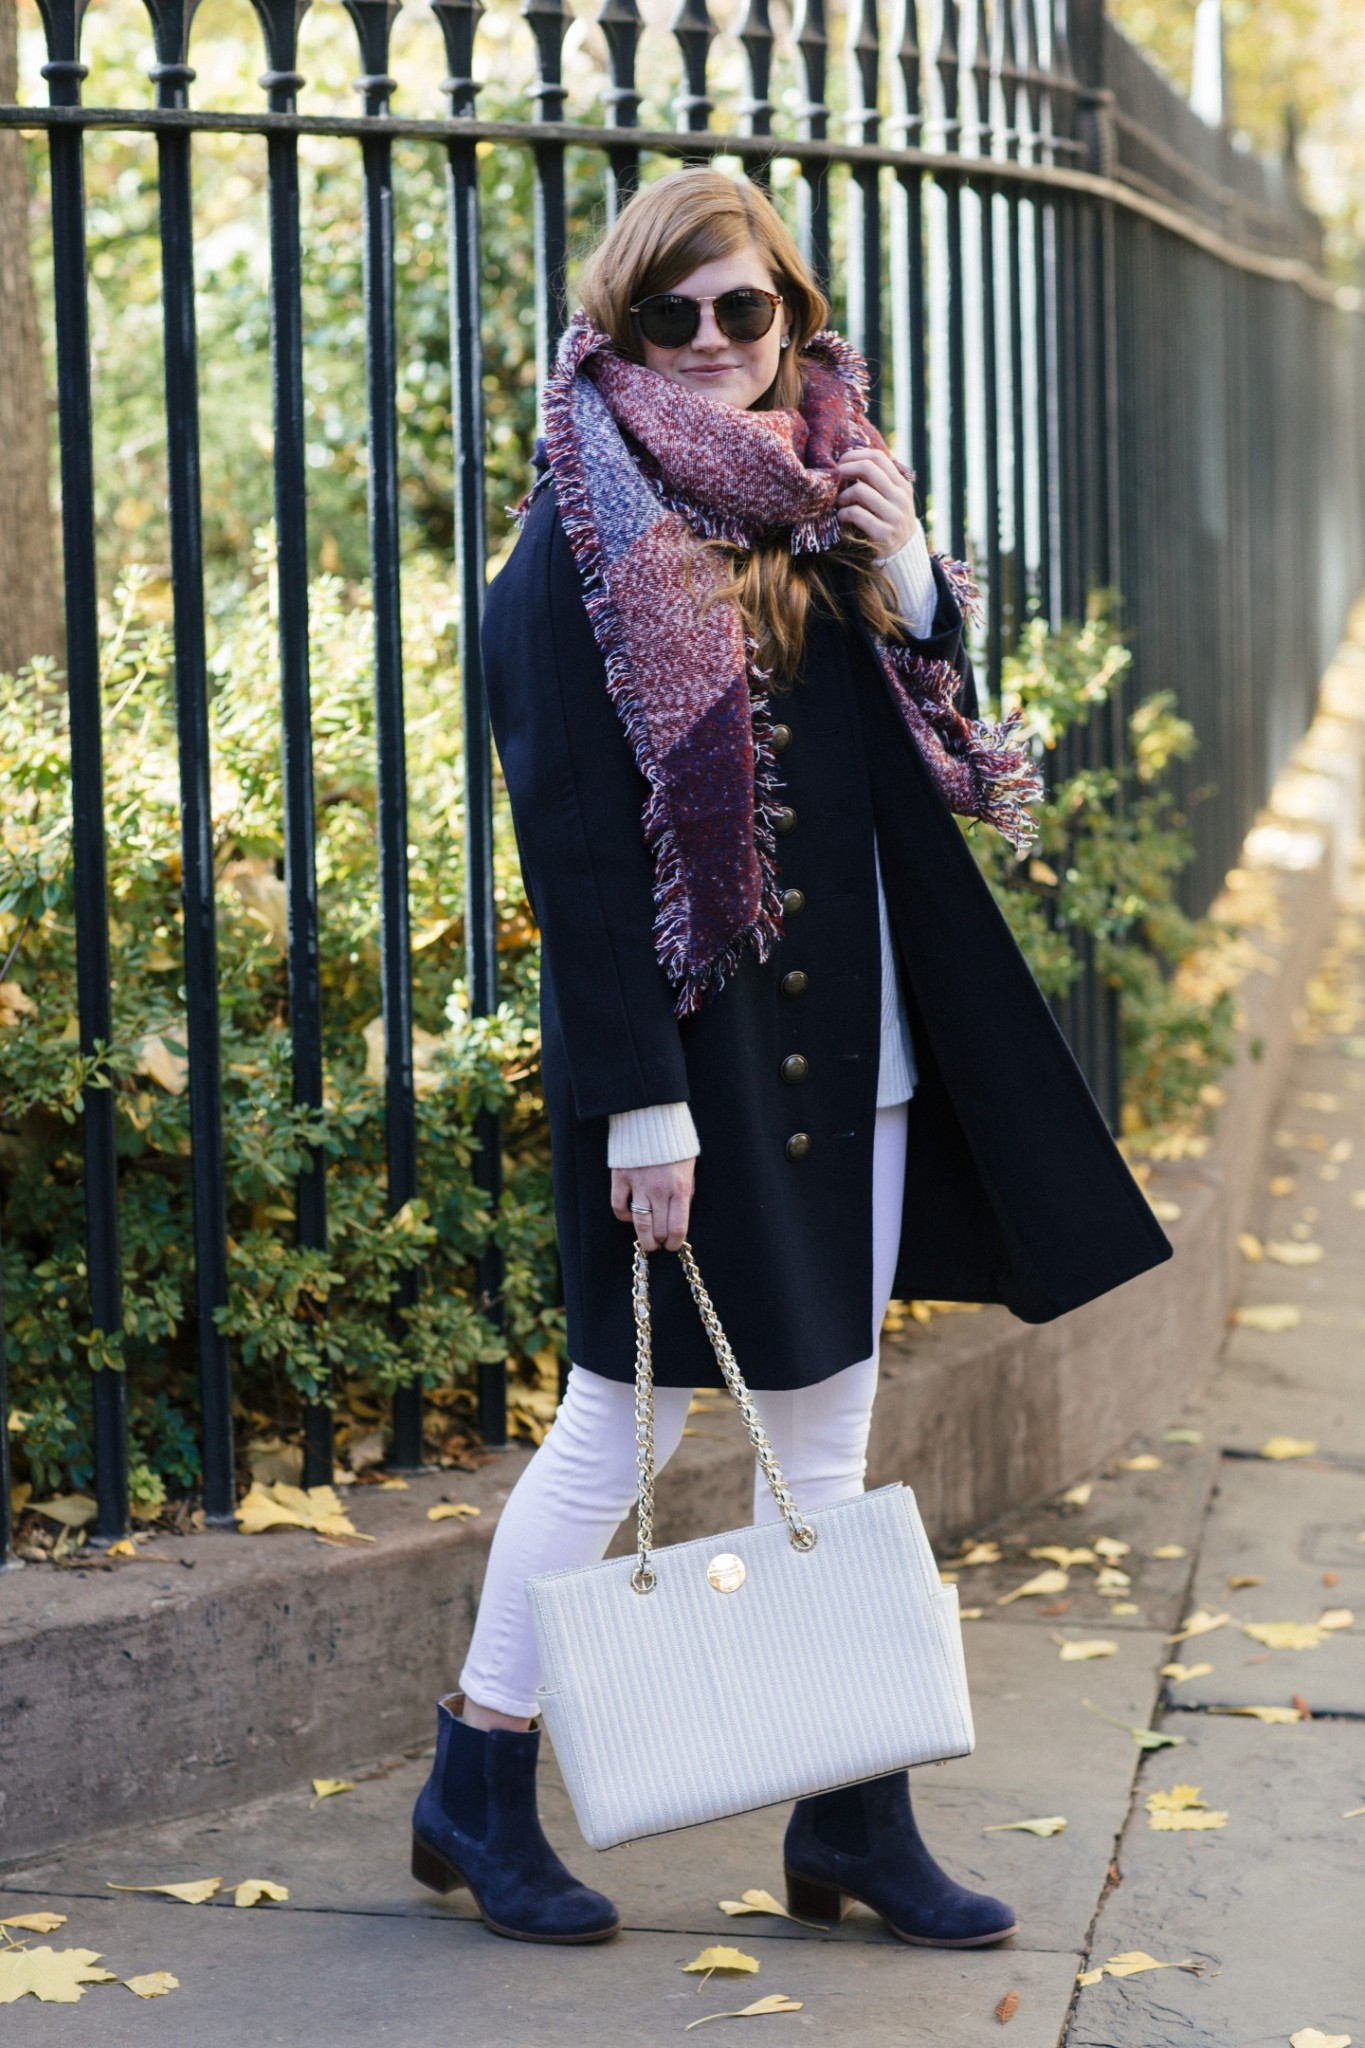 Lifestyle blogger Mollie Sheperdson shares her top 5 winter coats